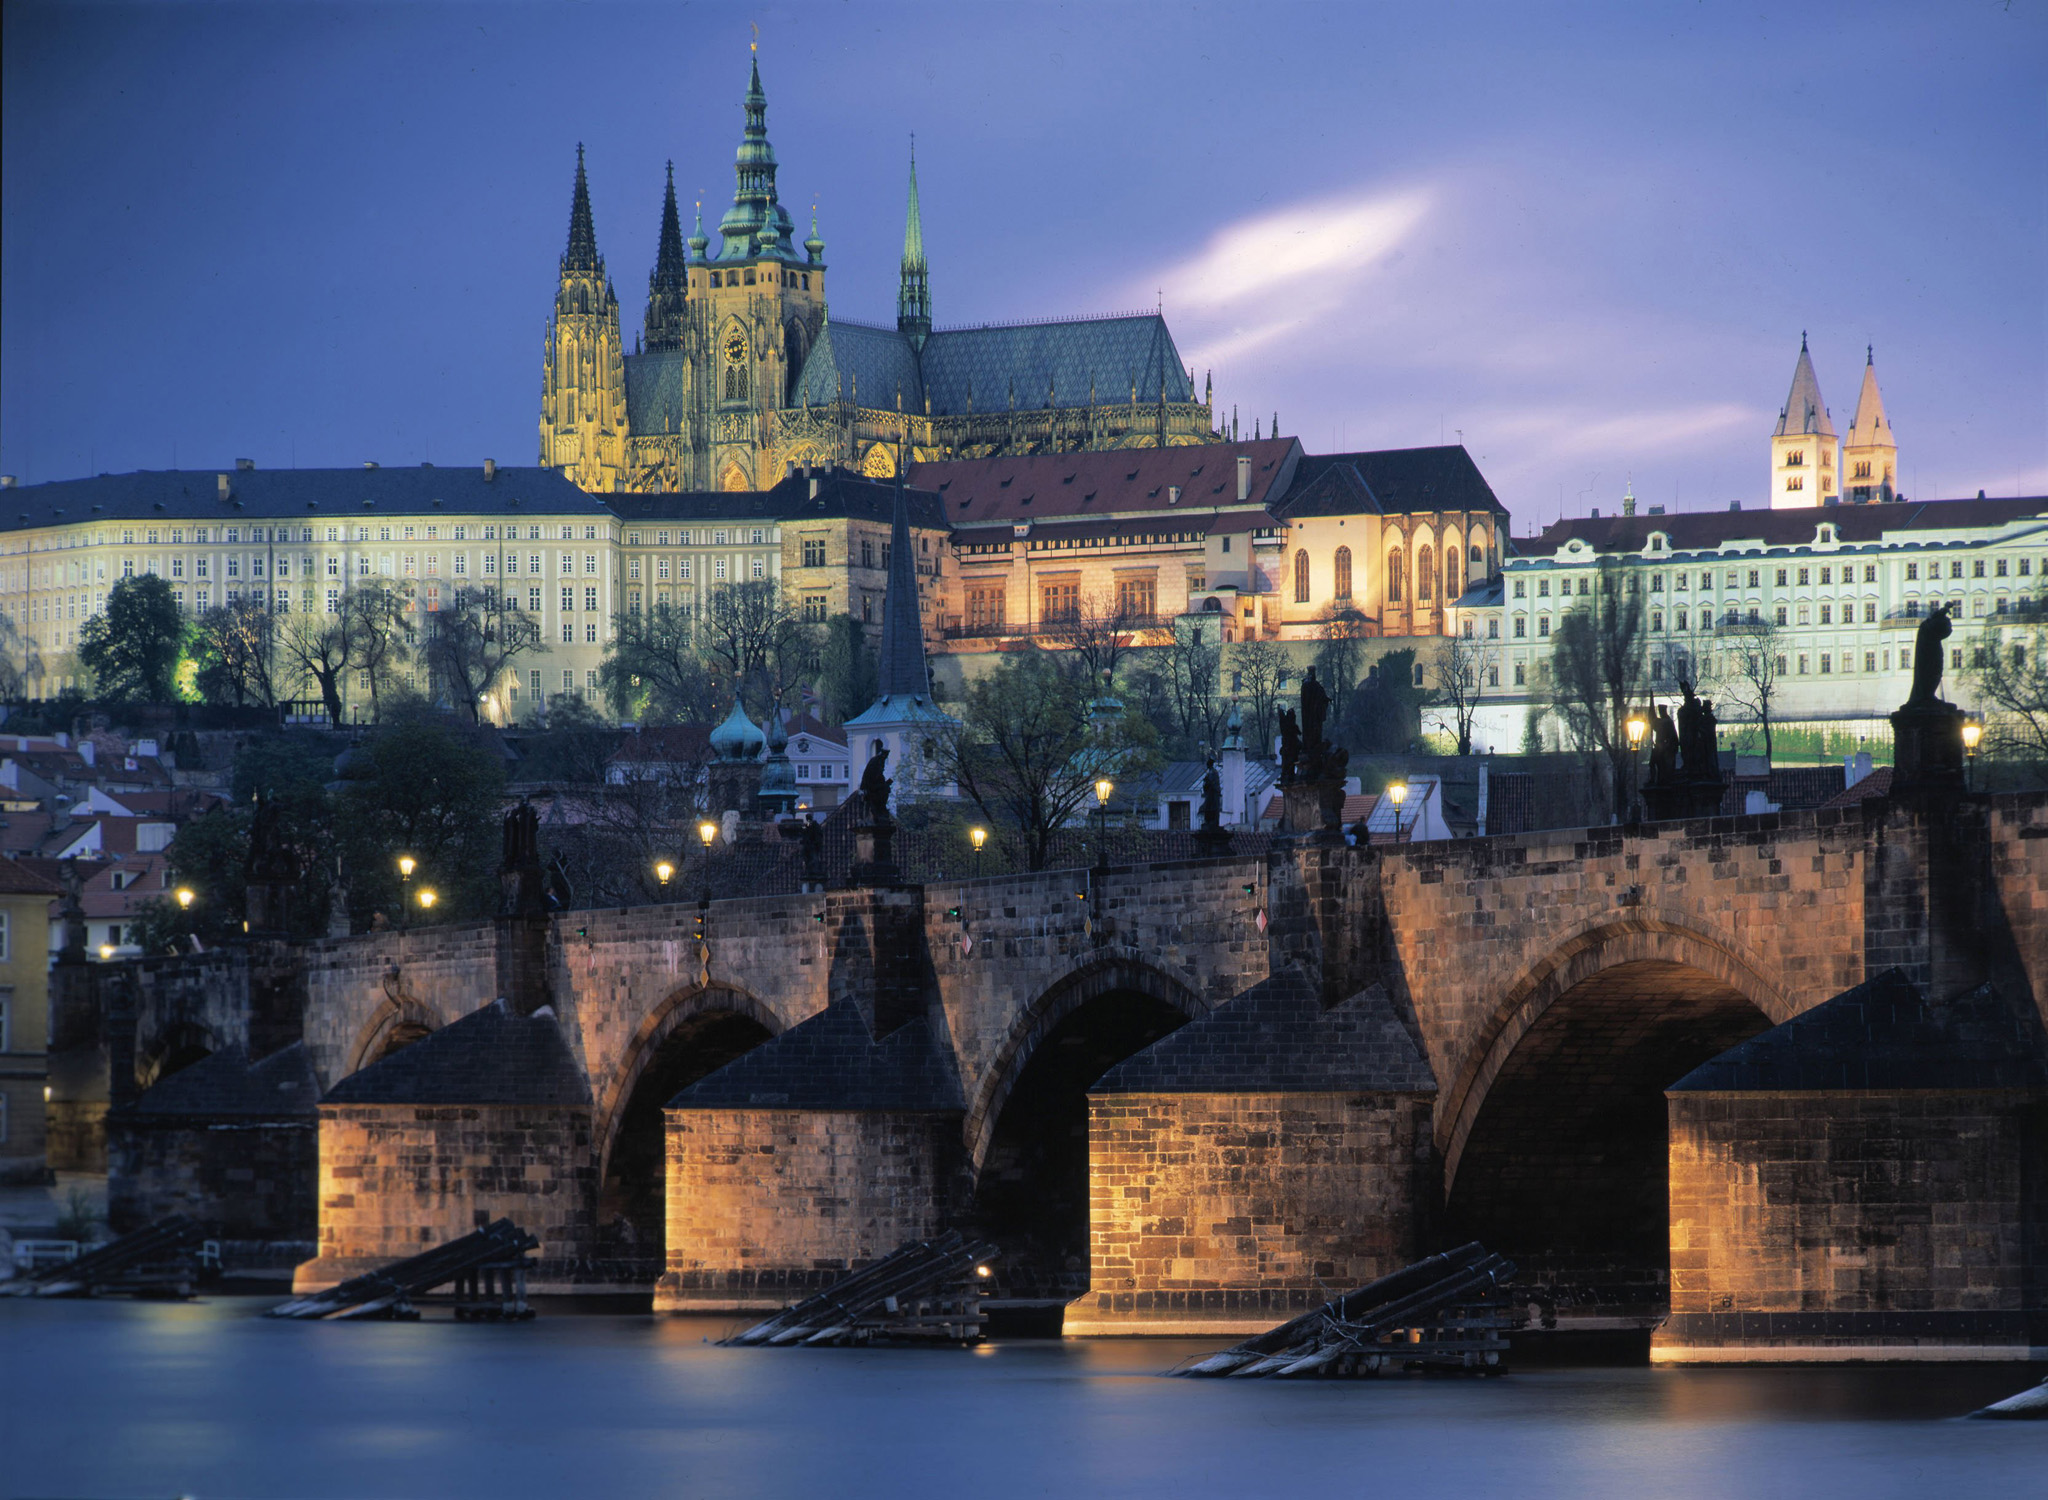 CTK1 - 20021030 - PRAGUE, CZECH REPUBLIC: General view of Charles Bridge and Prague Castle at sunset, 30 October 2002. 